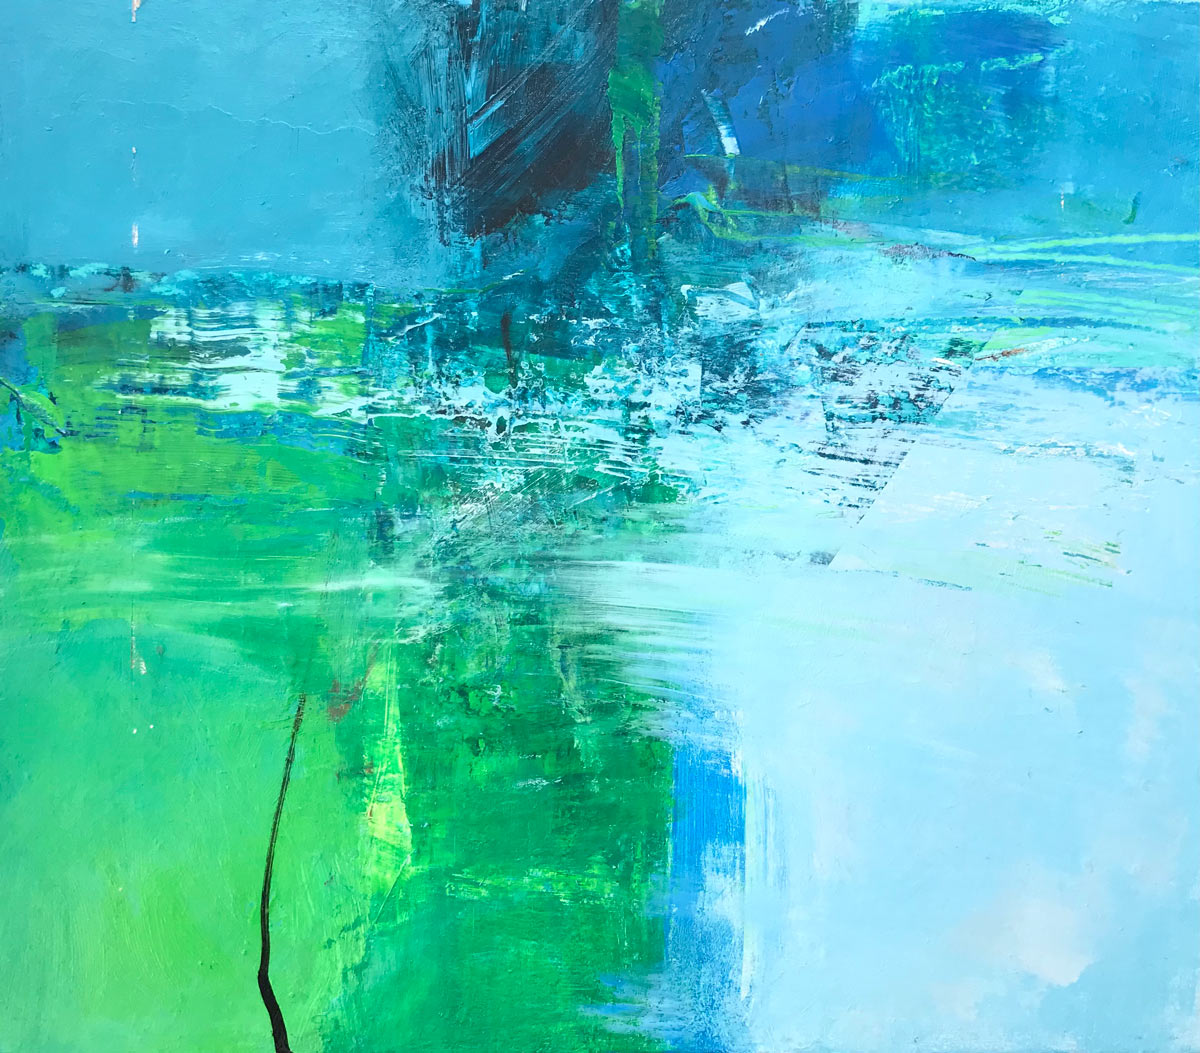 https://neilcanning.com/wp-content/uploads/sites/3/2021/08/Sea-Green-by-Neil-Canning-at-Martin-Tinney-Gallery-Cardiff.jpg